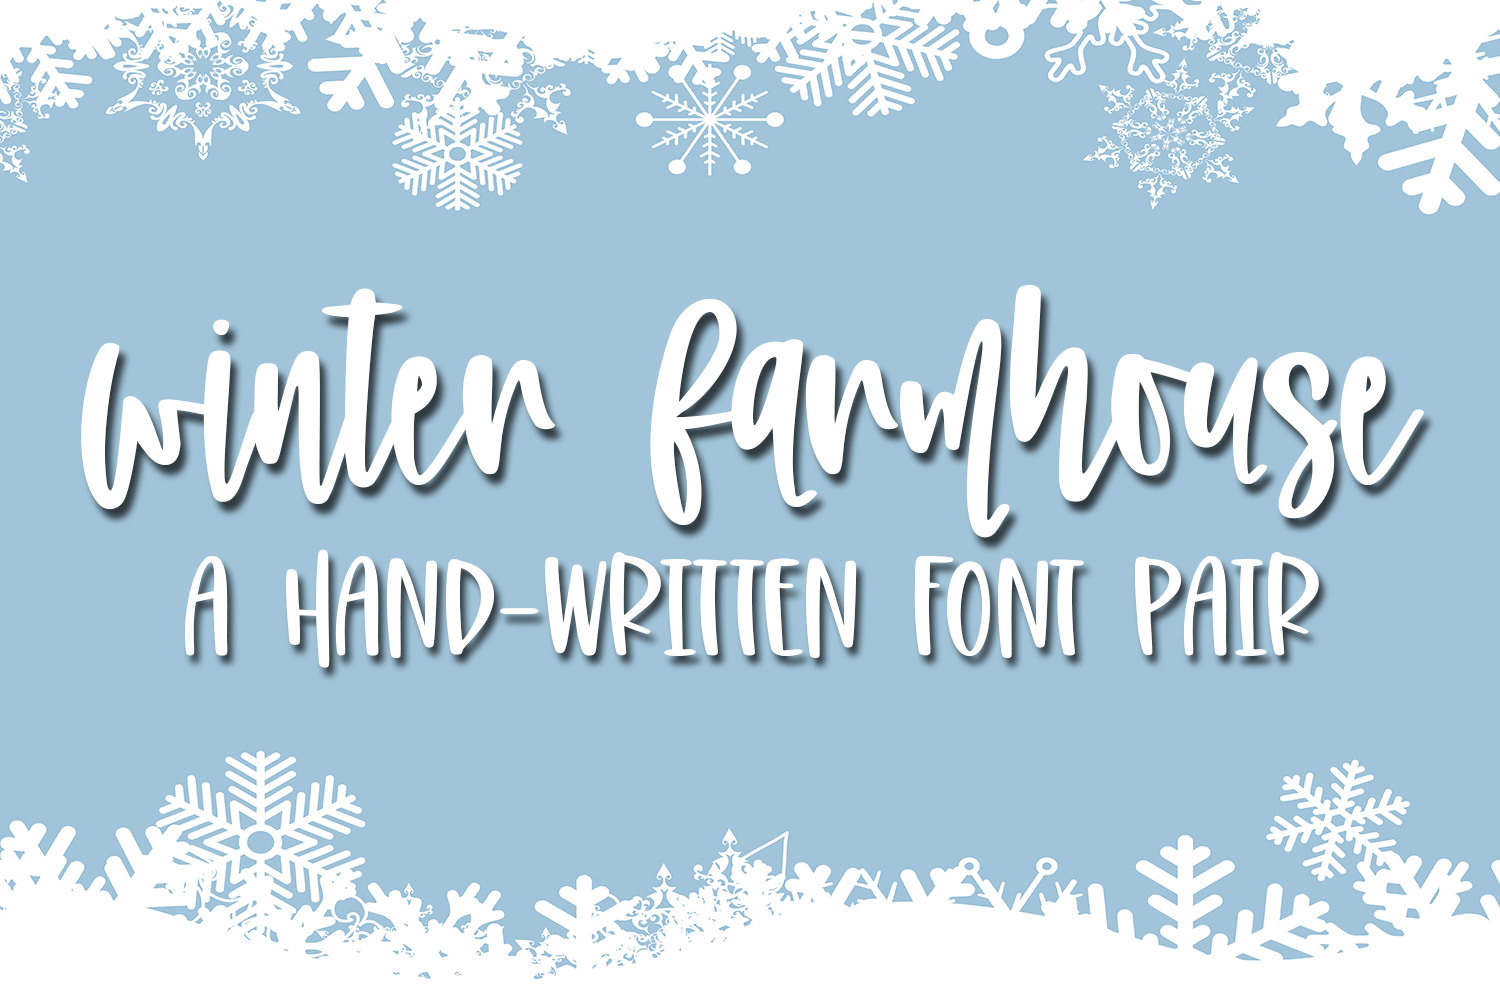 Winter Farmhouse - A Hand-Written Font Pair example image 1